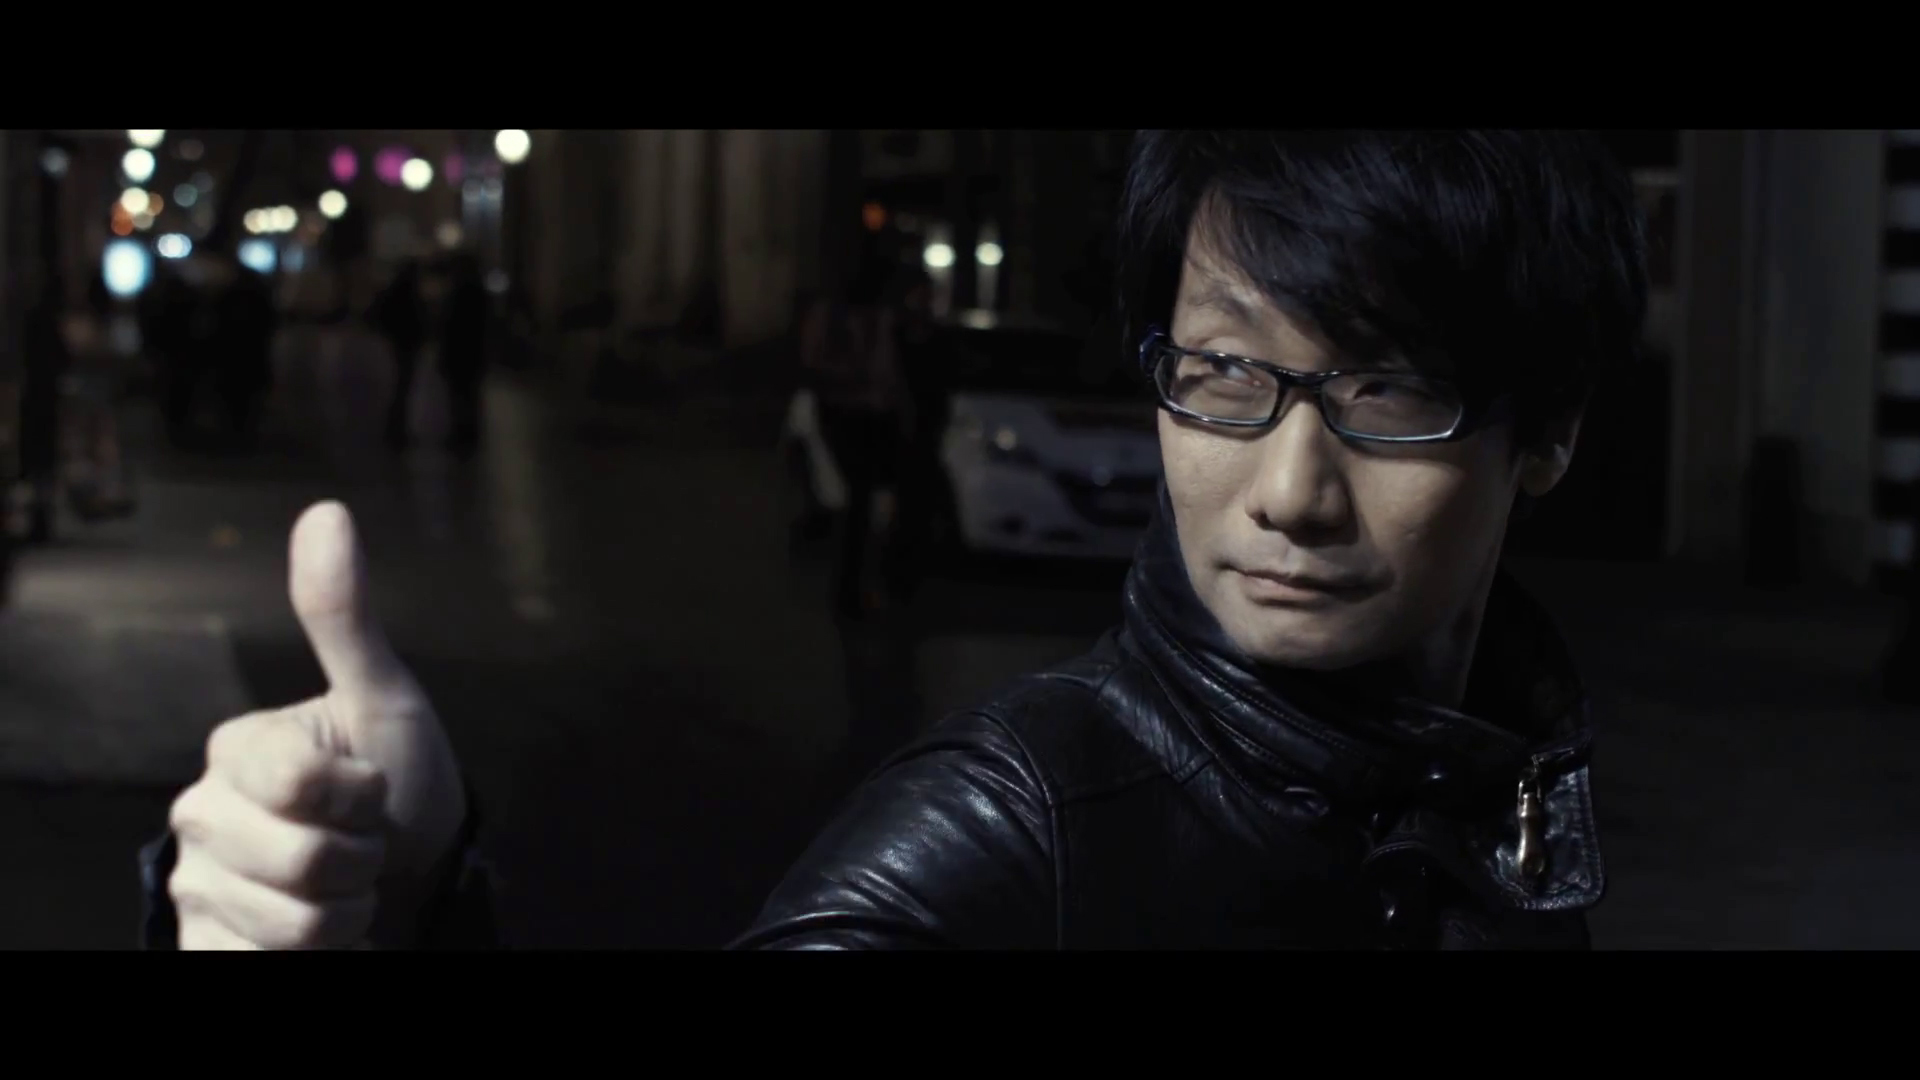 Hideo Kojima Reportedly Starting New Studio - Reportedly Launching on Sony Platforms First